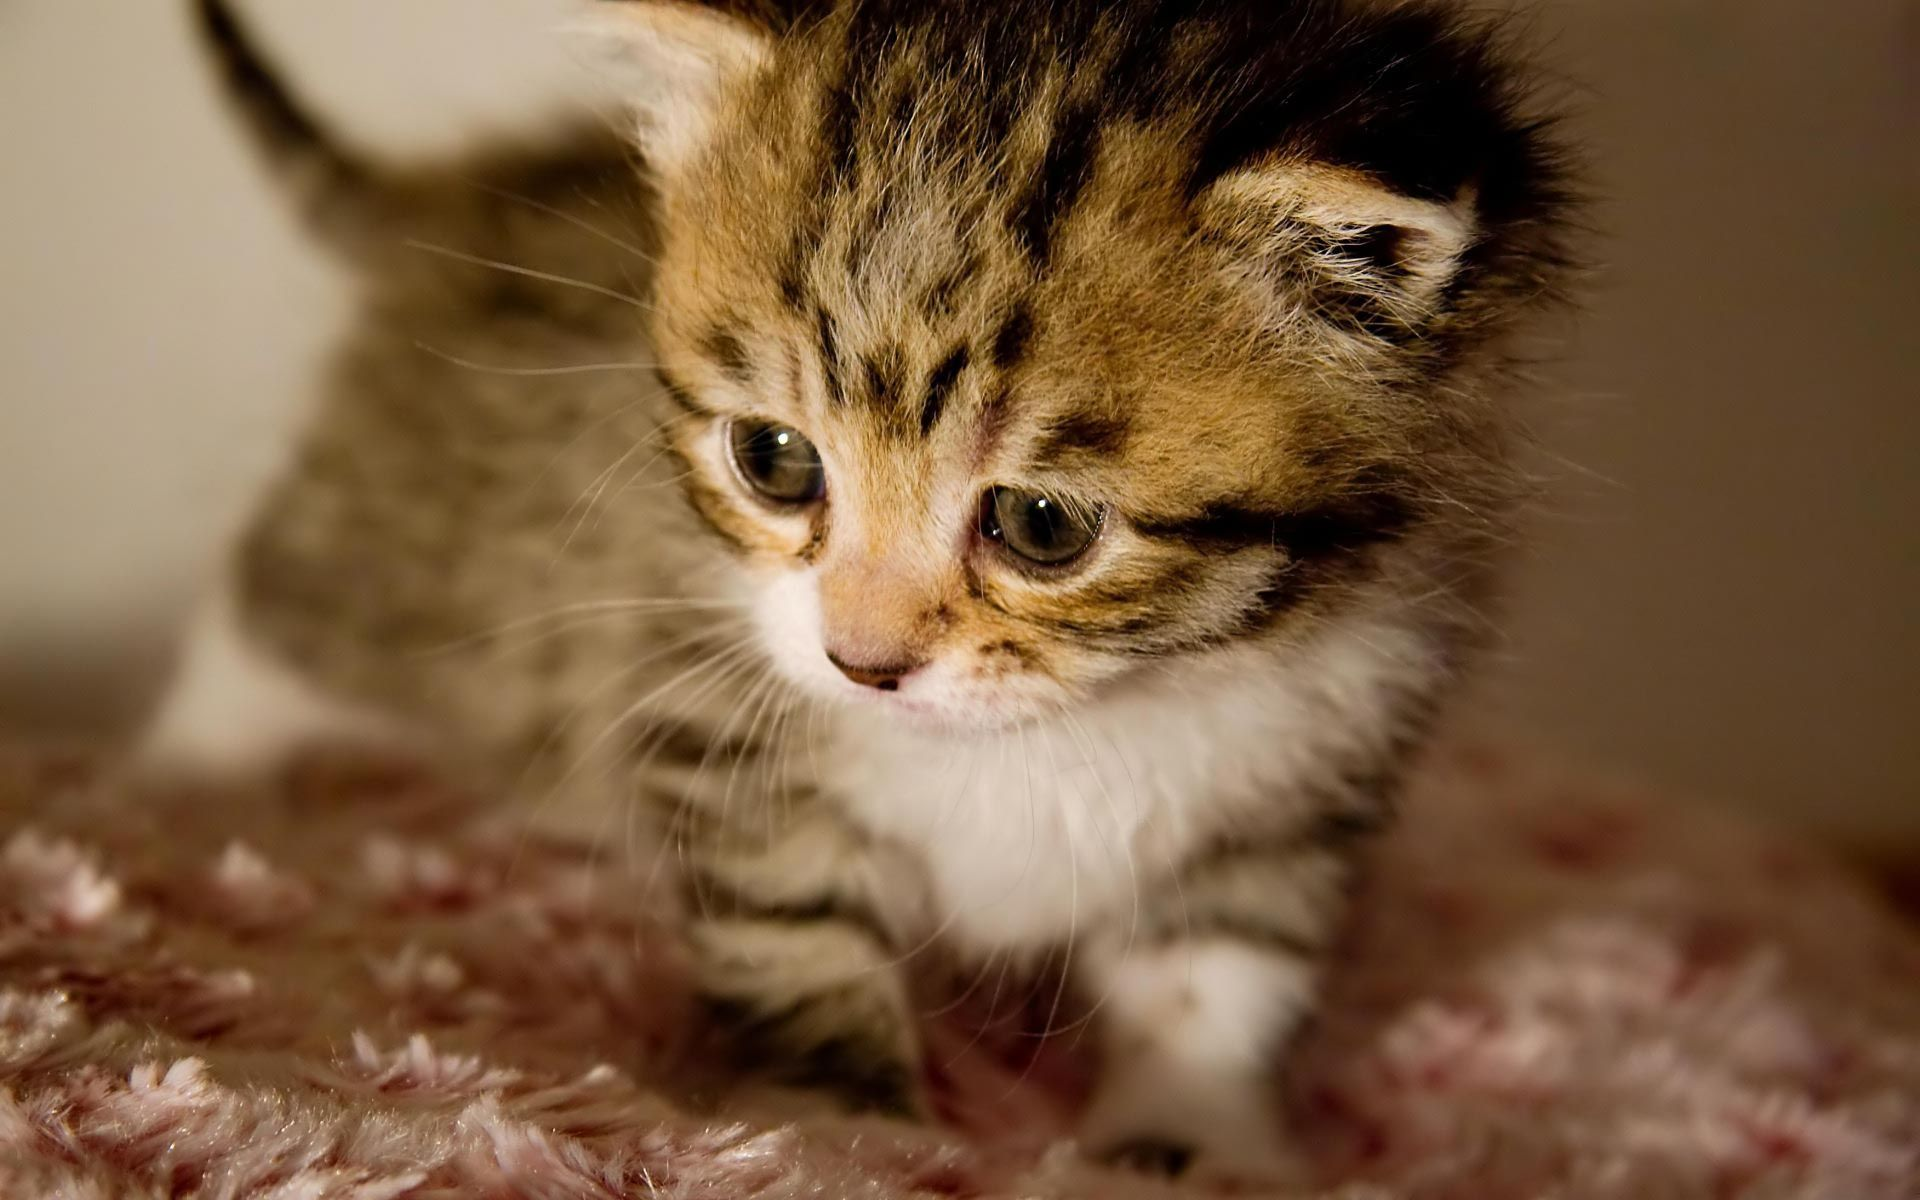 baby kittens pictures backgrounds · Animal Life